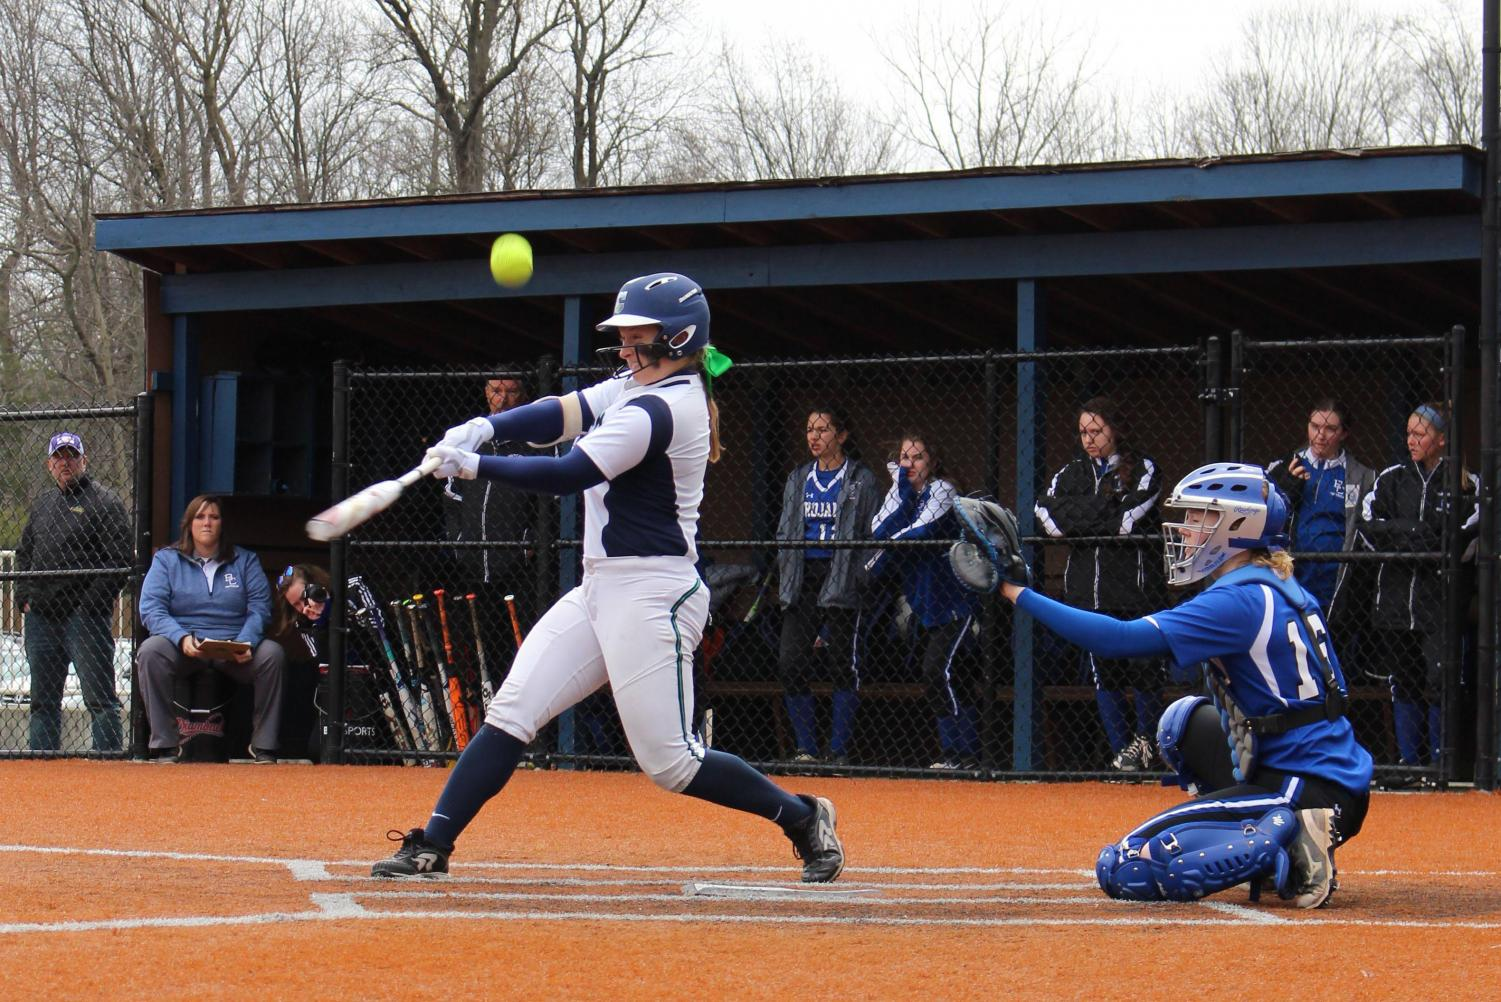 The varsity softball team, shown in action last year, plays several games during the week of April 8.